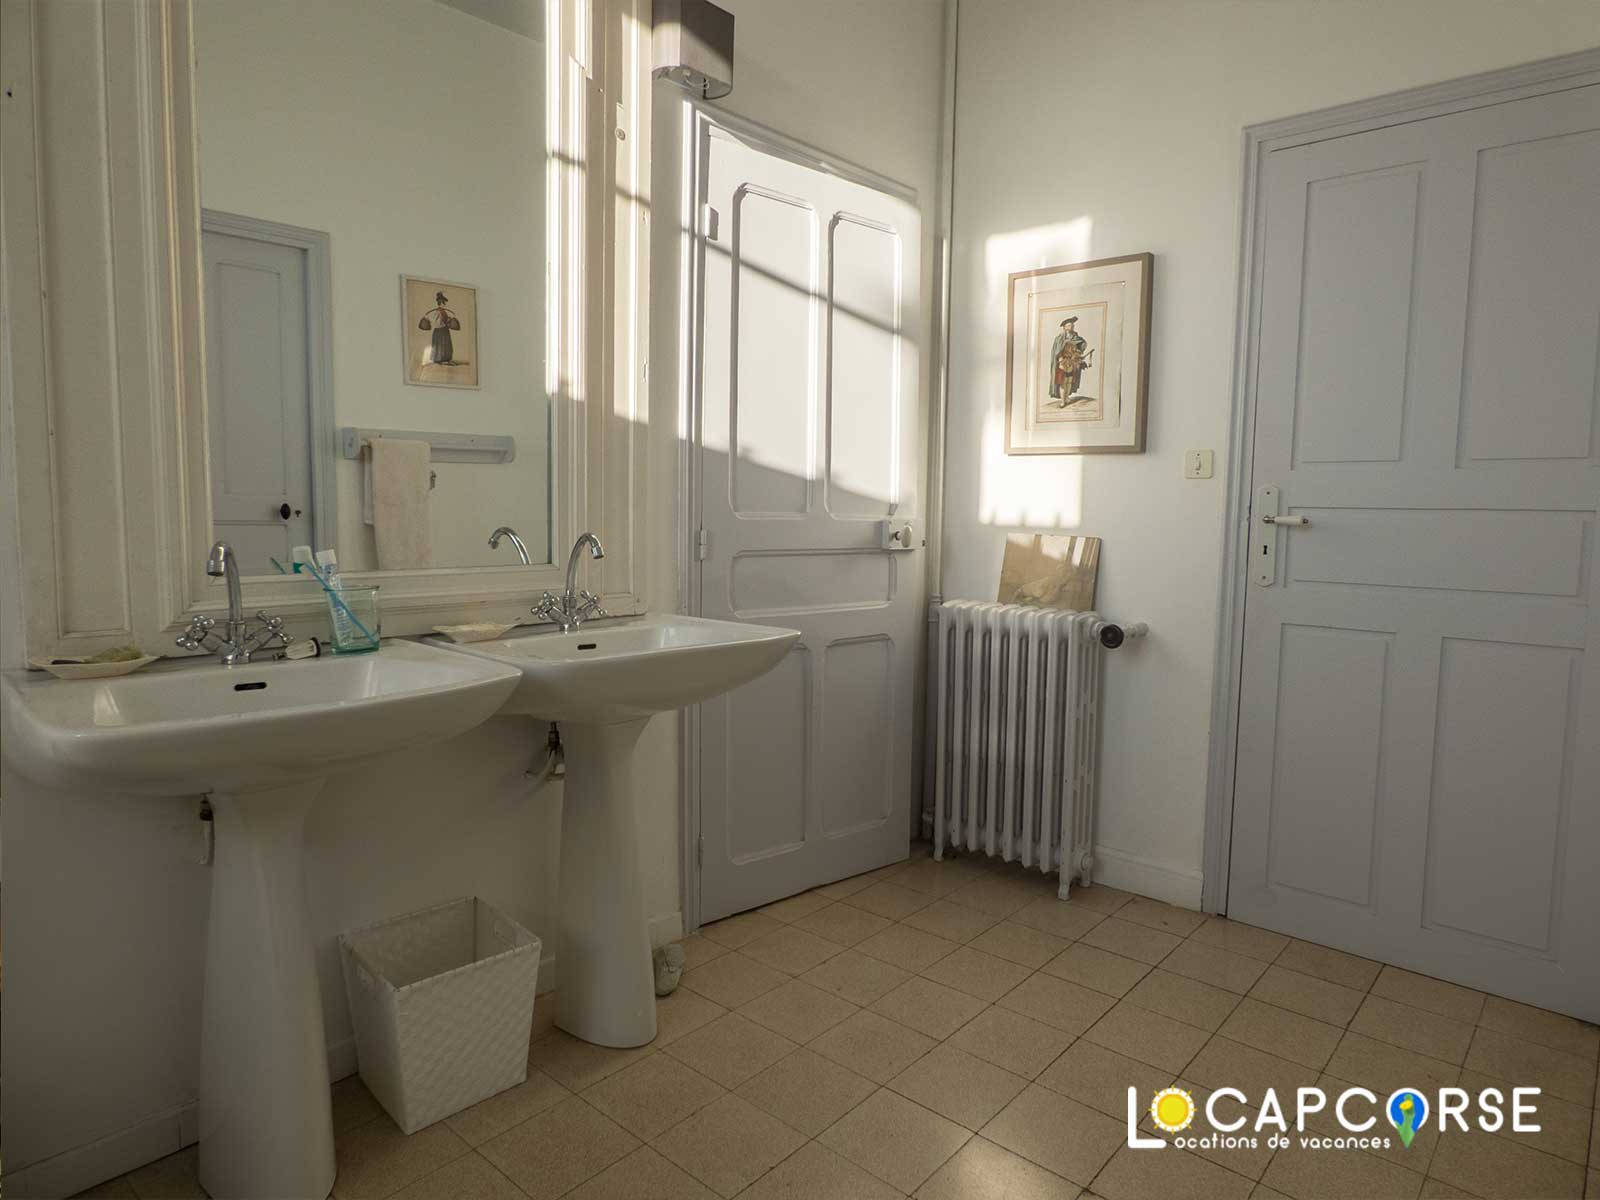 Locations Cap Corse - the bathroom with doors giving access to bedroom 2 and corridor